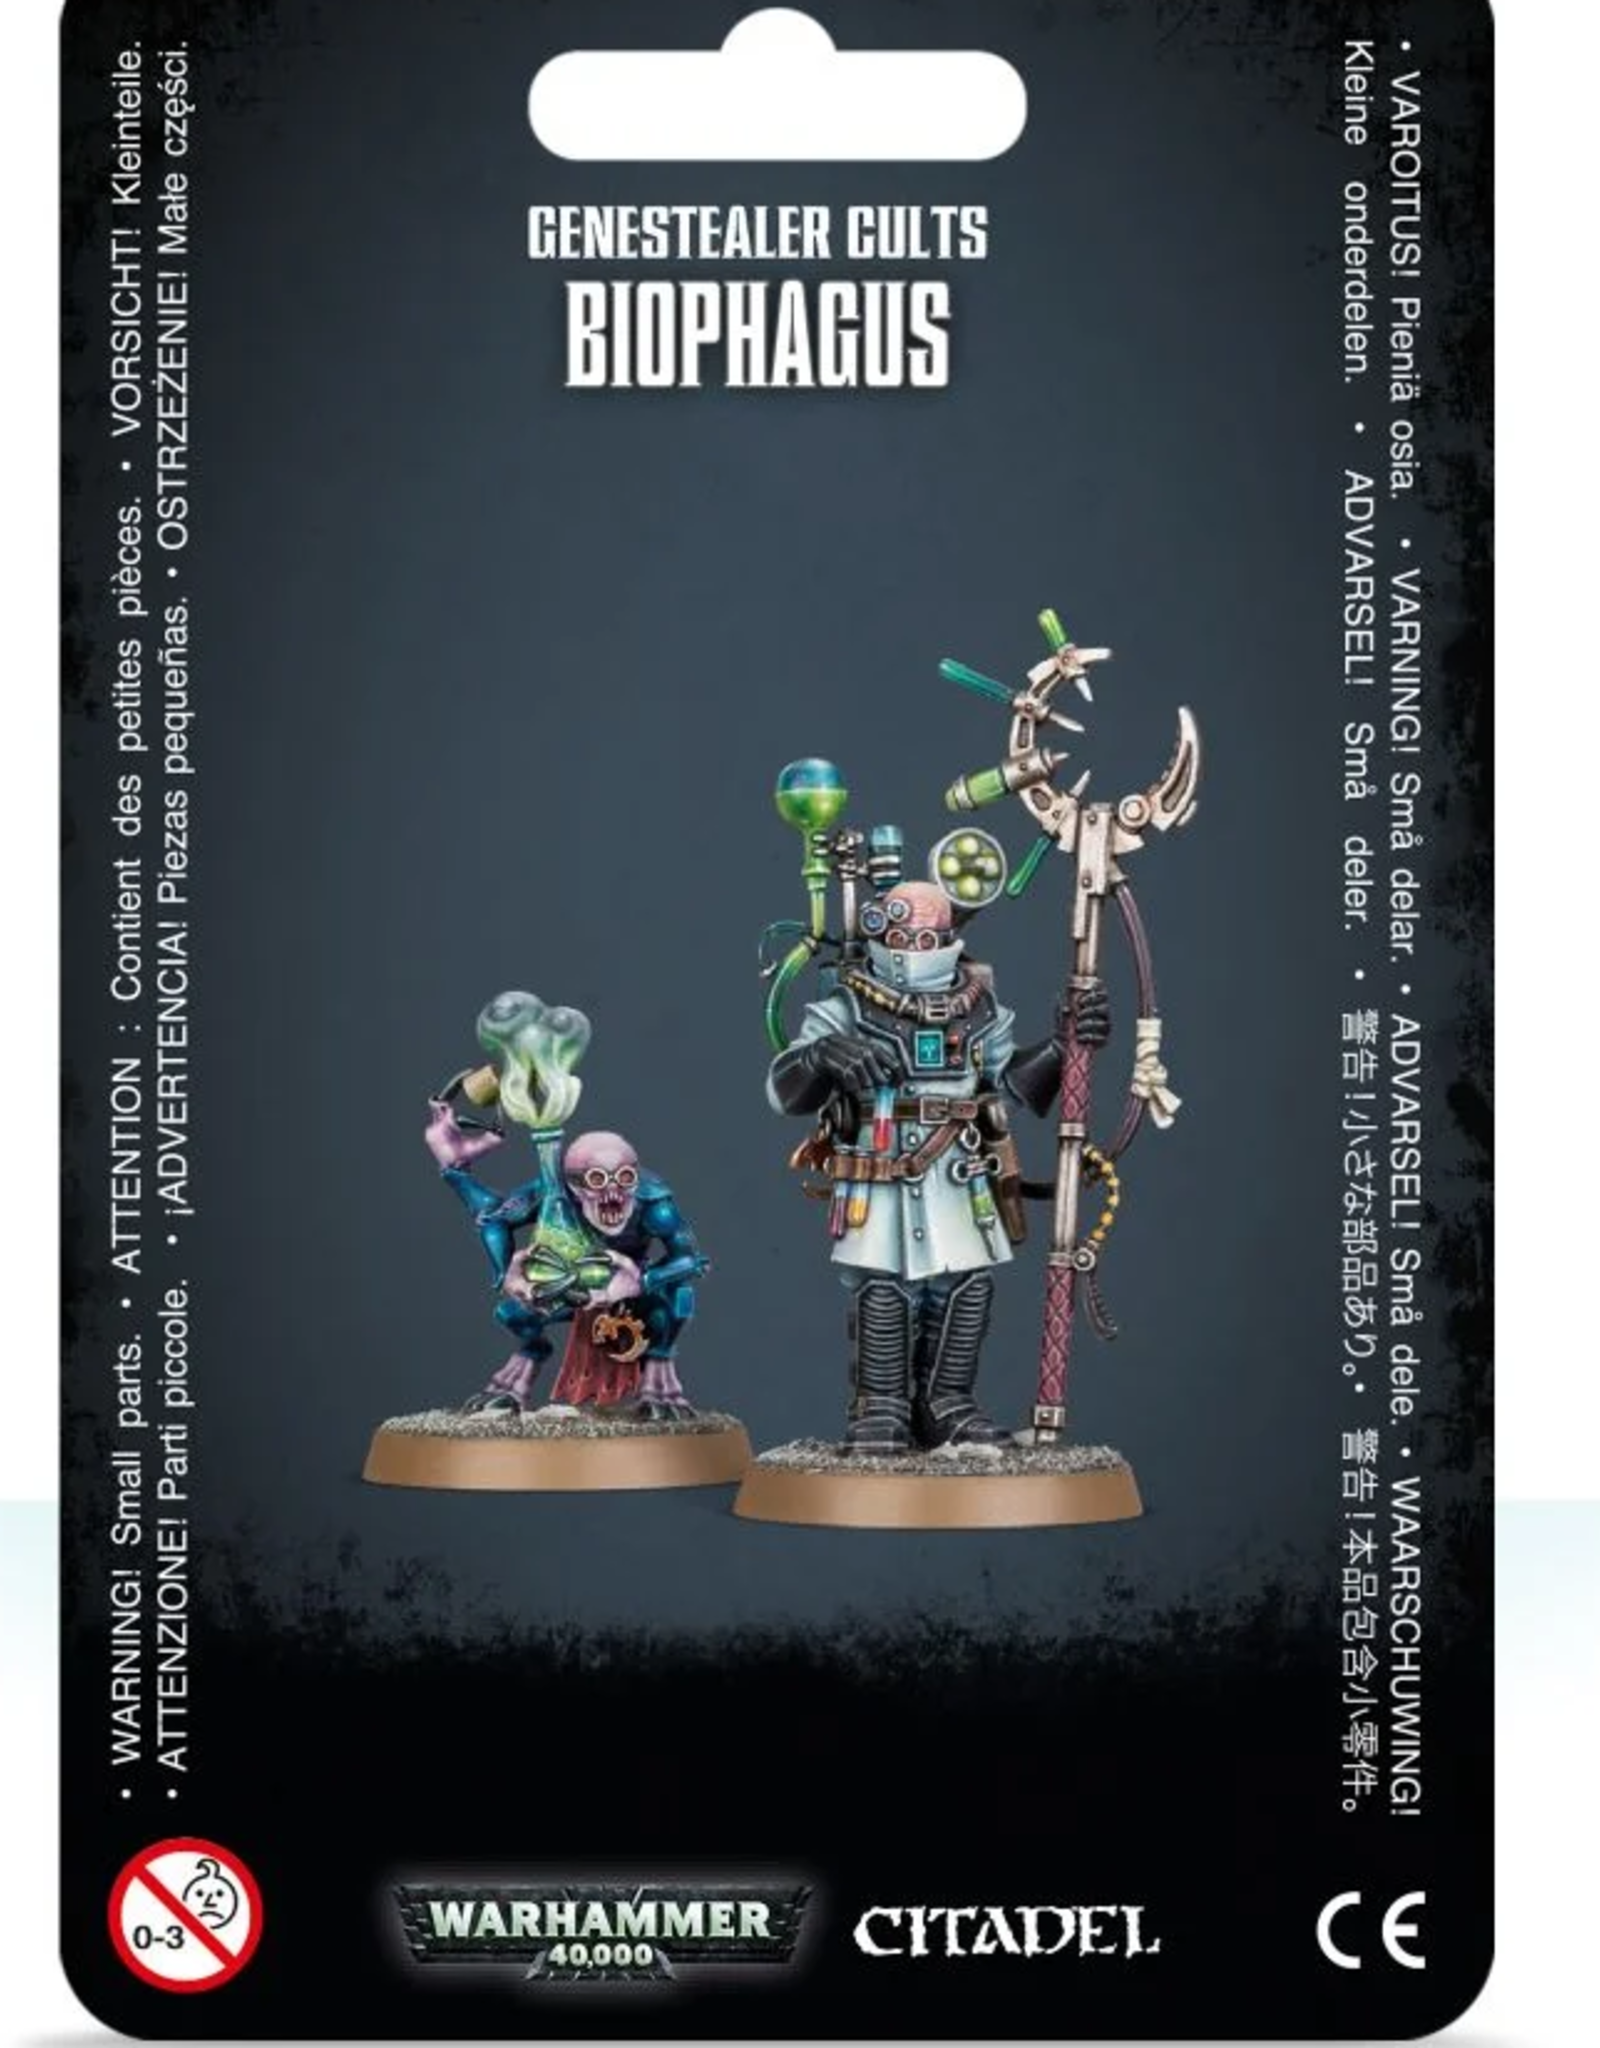 Games Workshop Genestealer Cult: Biophagus